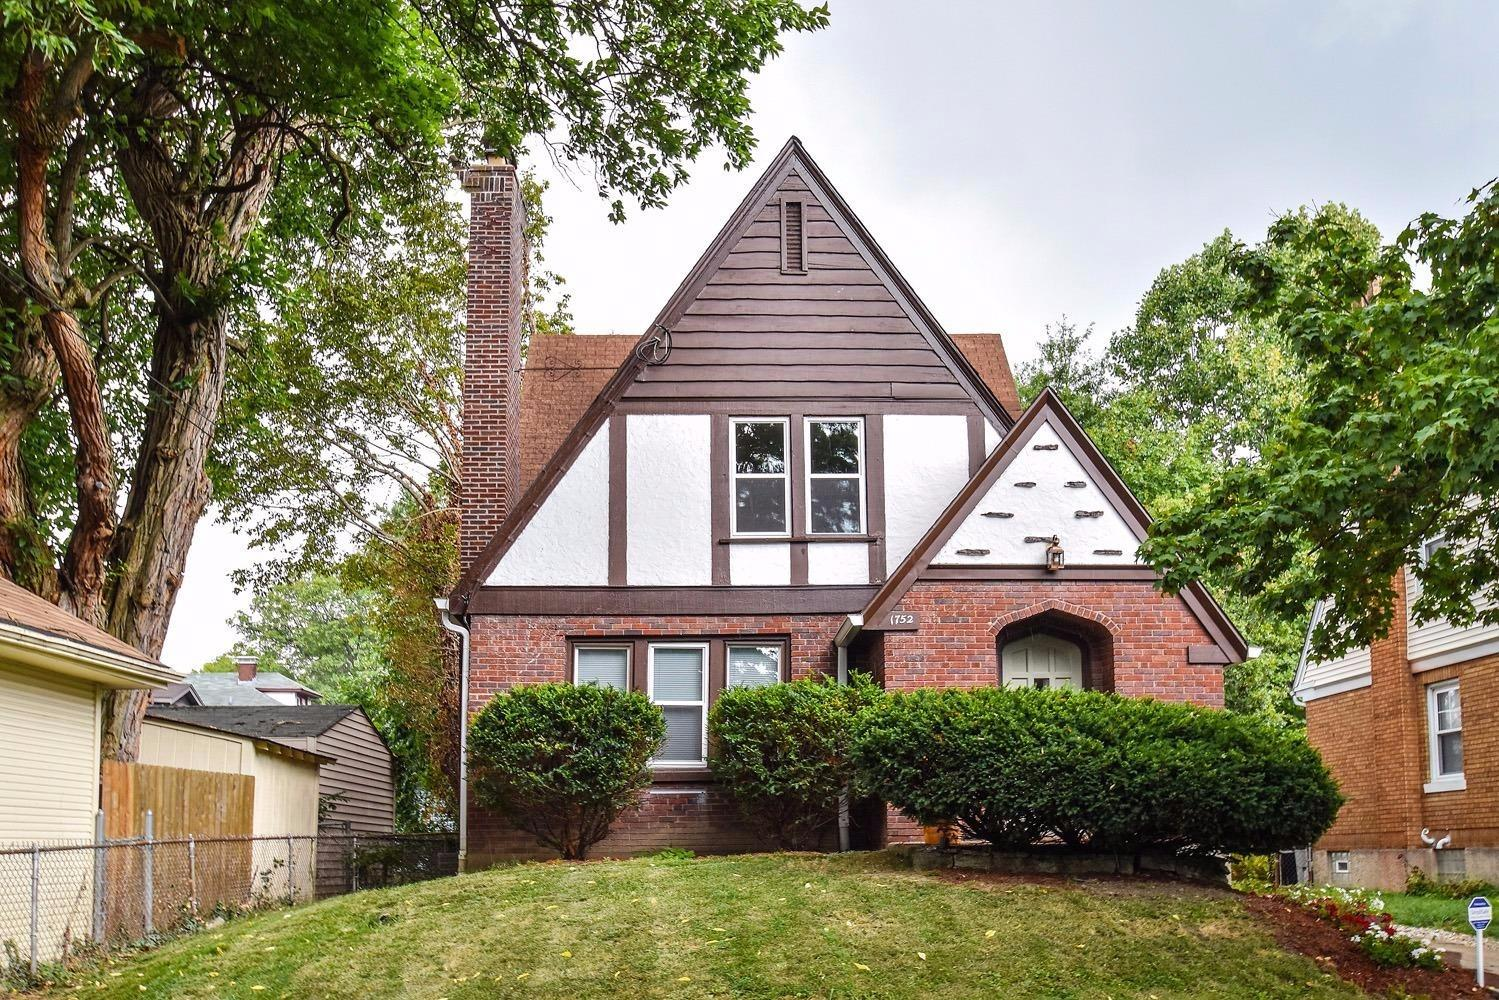 Elegant, beautifully updated 2345 SQ FT Tudor-style home on quiet side street! Hdwd flrs, neutral colors, new wdws thruout. New WOW kitchen w/stainless appl, granite counters, tile floor/backsplash. 2nd flr study can be a 6th BR by adding an armoire.  Waterproofed basement.    Attached + detached garages! Furnace '16, gutters '13. Home warranty!